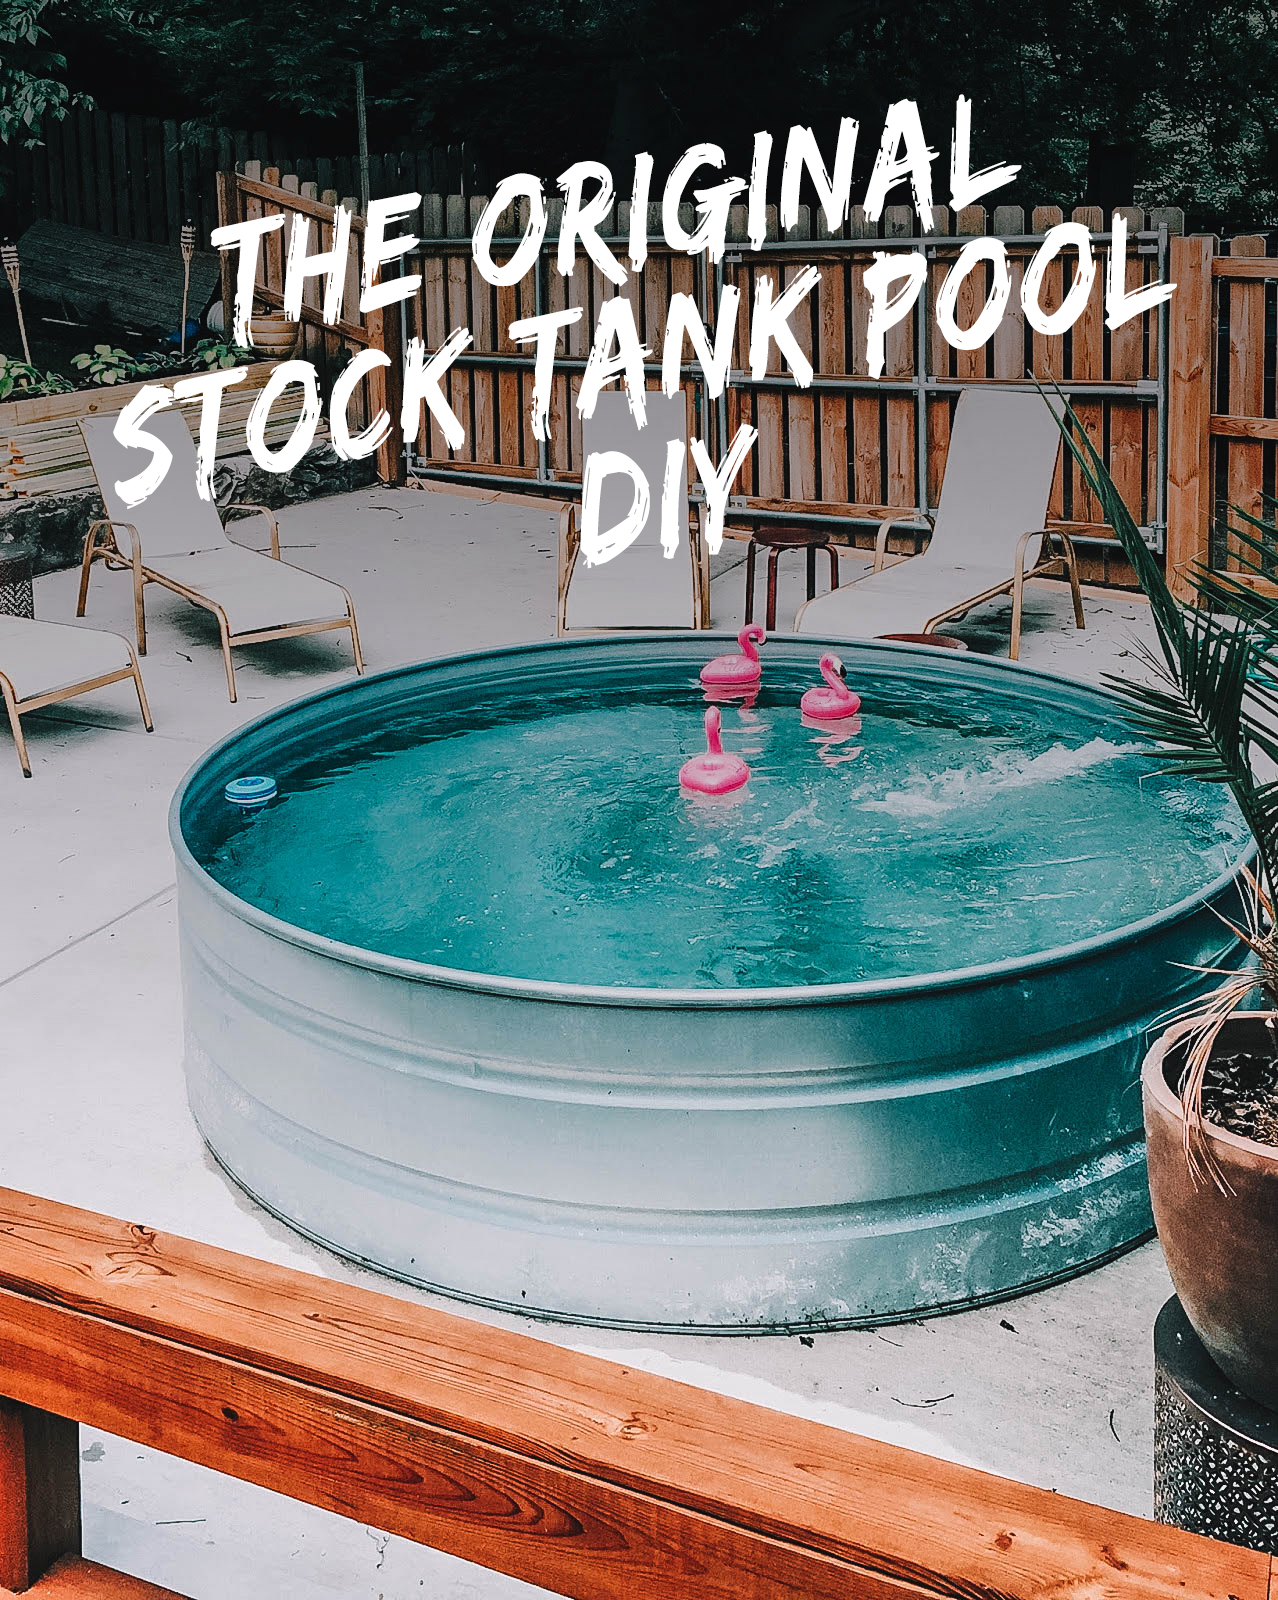 How To Set up your stock tank pool - The first and most important thing you need to do is set up your pool to filter water. If you don't set up a filter, you will spend your summer battling dirt, sediment, debris, and/or algae. If you would like a more hands-off approach for your stock tank pool maintenance, you'll want to follow this tutorial.